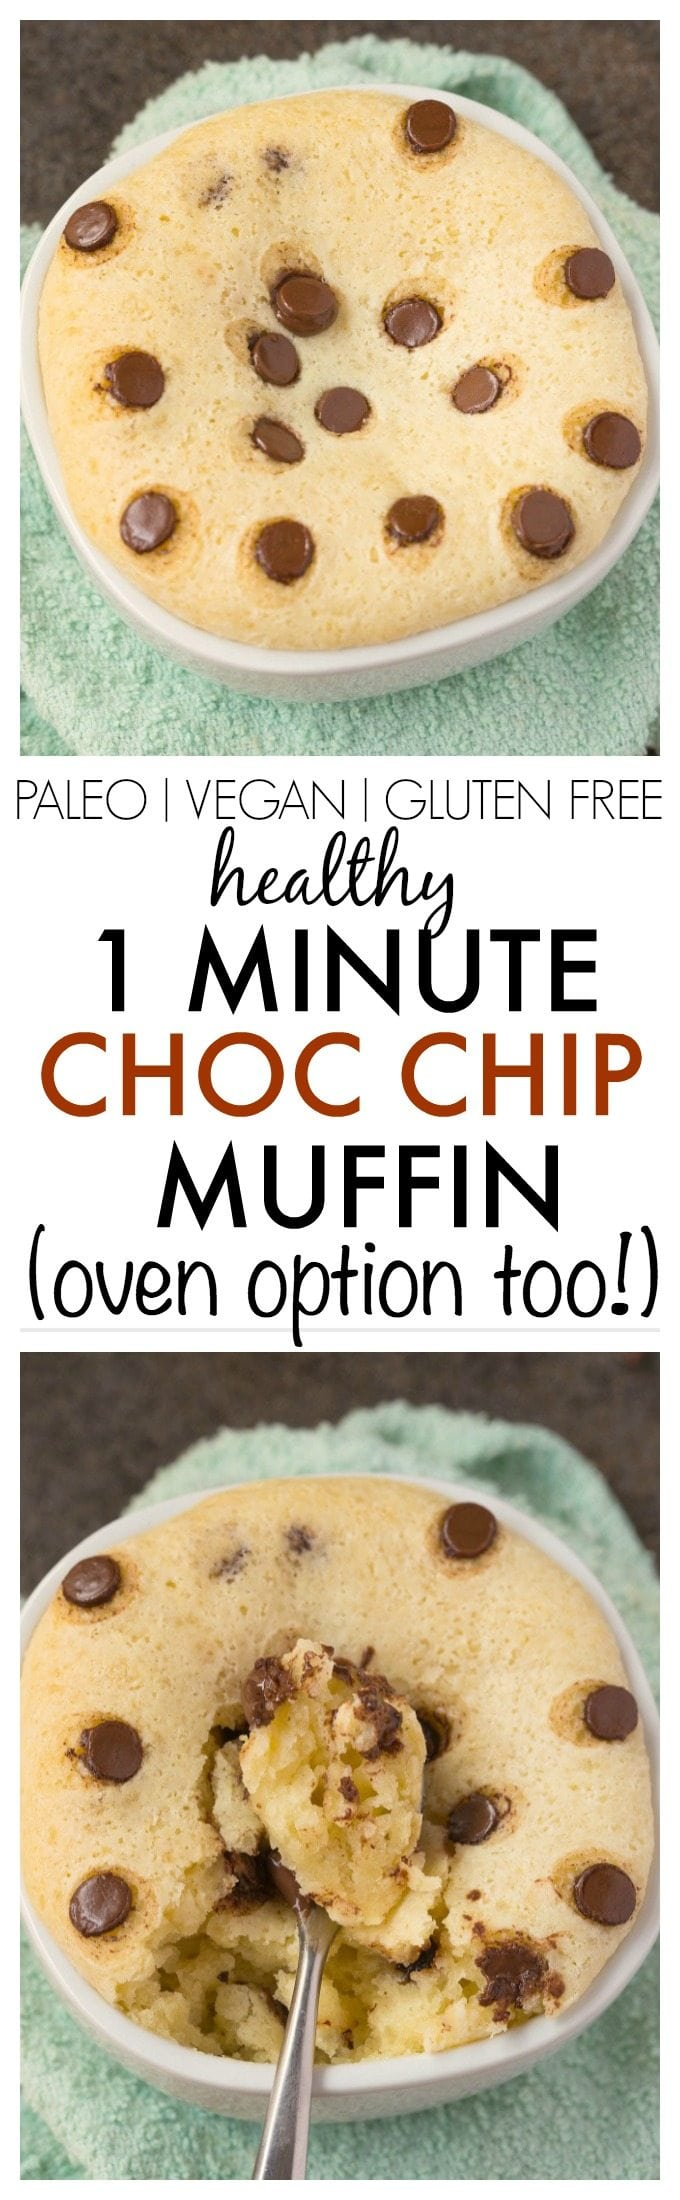 Healthy One Minute Chocolate Chip Muffin Recipe- SUPER fluffy, moist, yet tender on the outside and less than 100 calories and ONE ready in minute- An oven version too! {vegan, gluten free, paleo recipe}-thebigmansworld.com